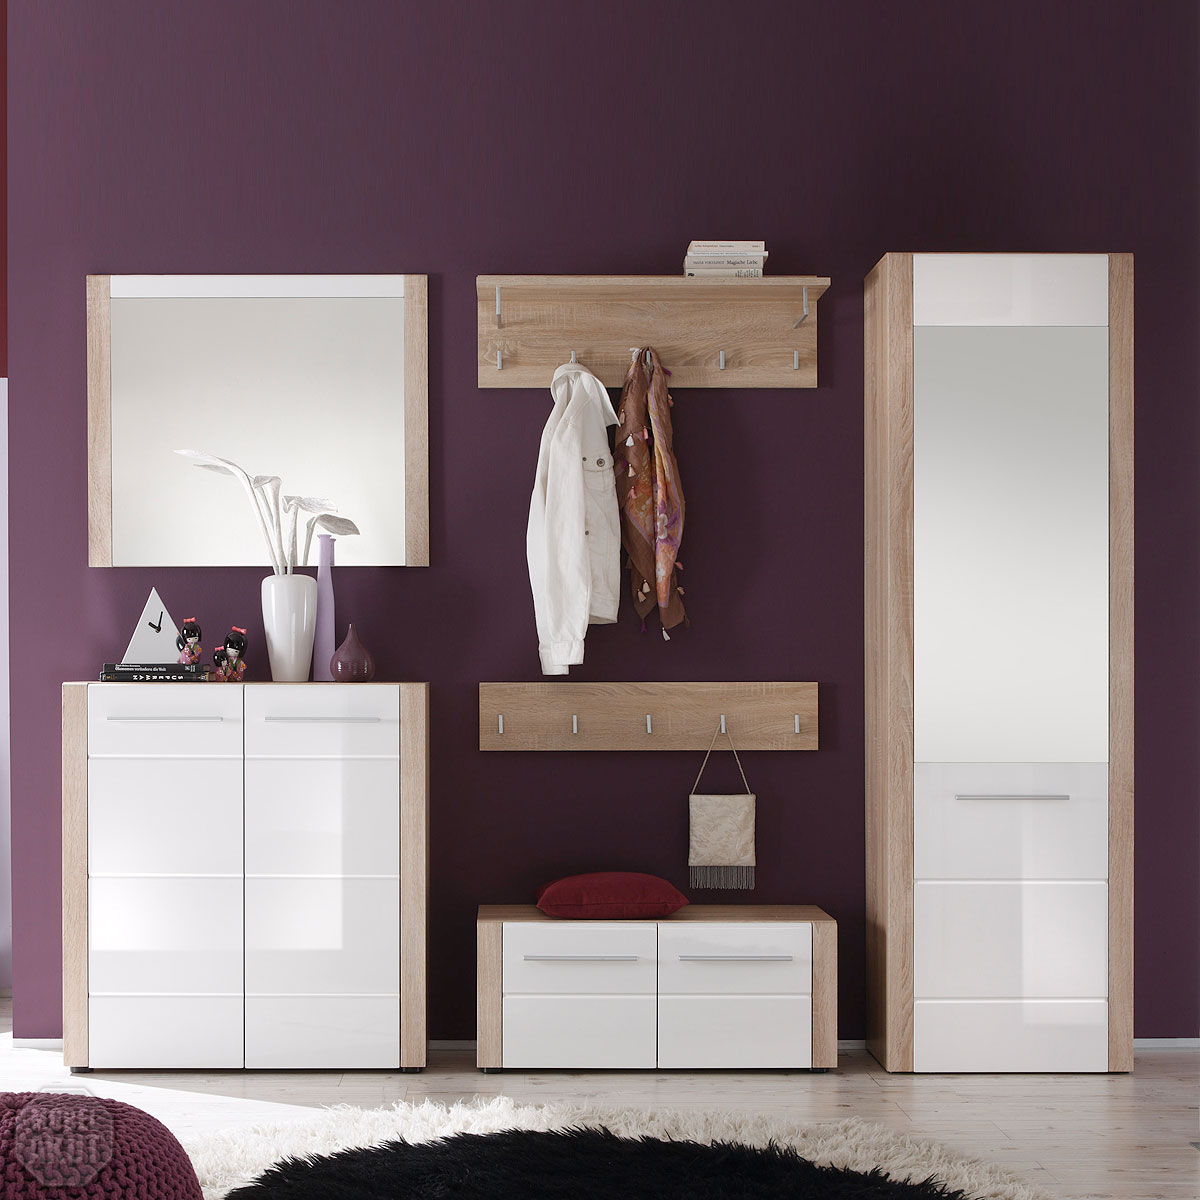 garderobenset i tila garderobe schuhschrank sonoma eiche s gerau wei hochglanz ebay. Black Bedroom Furniture Sets. Home Design Ideas